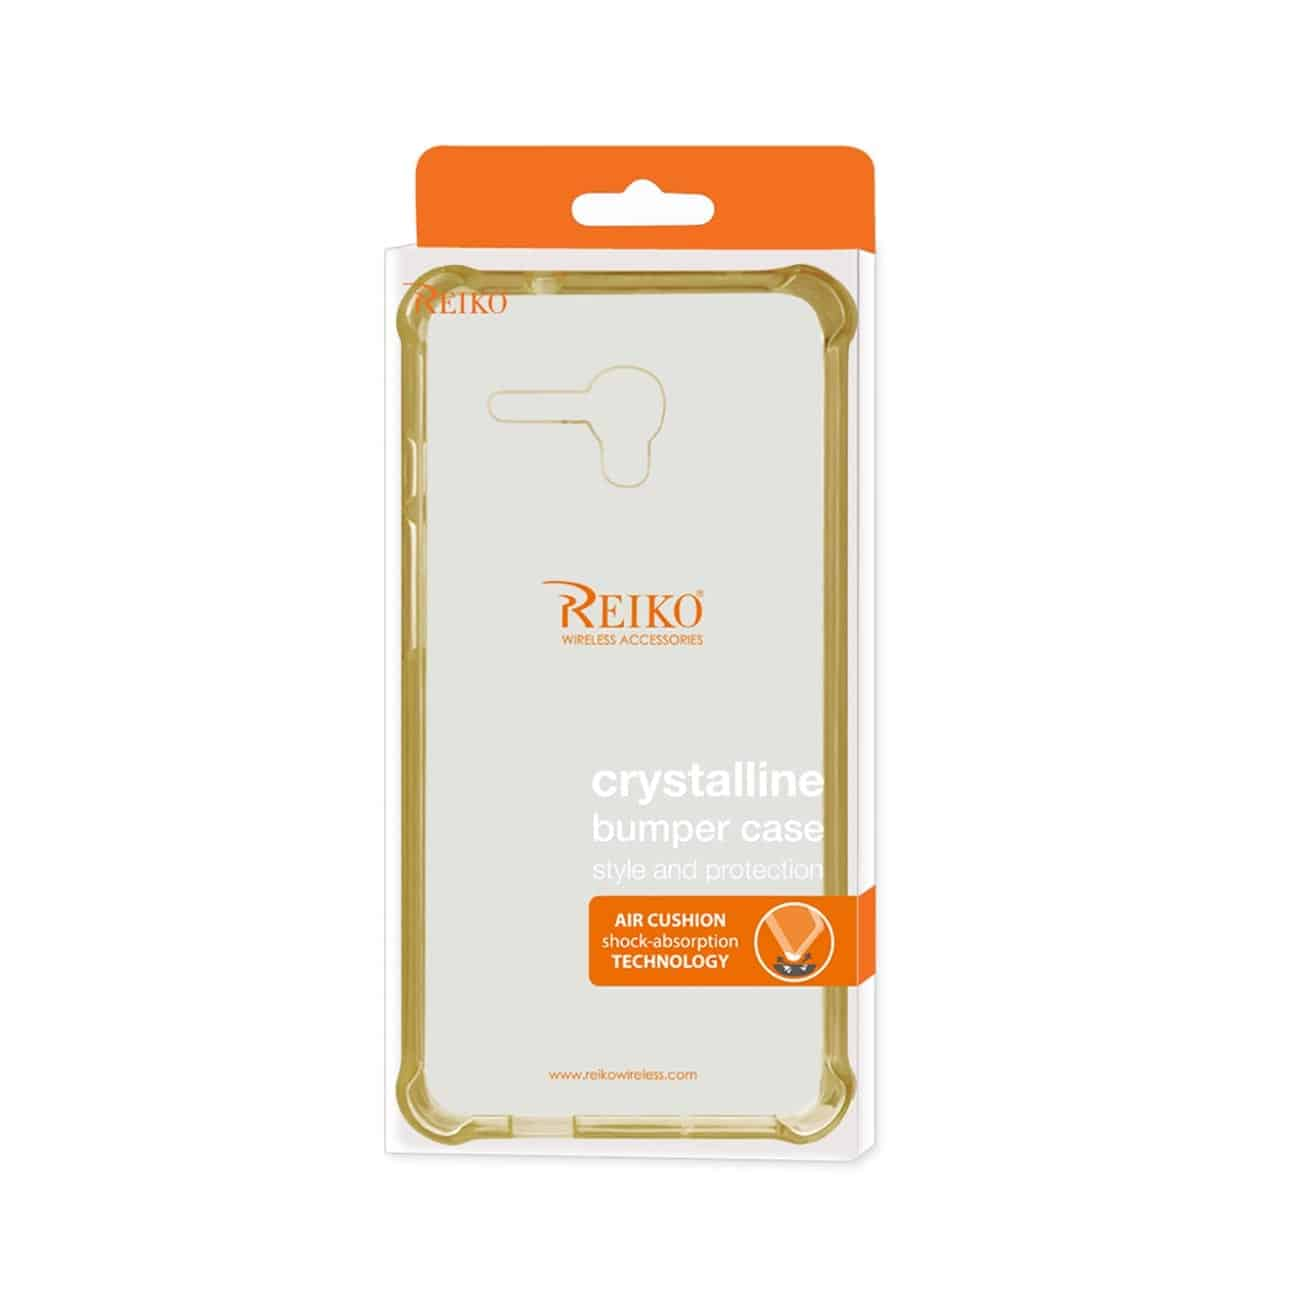 ALCATEL ONE TOUCH FIERCE XL MIRROR EFFECT CASE WITH AIR CUSHION PROTECTION IN CLEAR GOLD